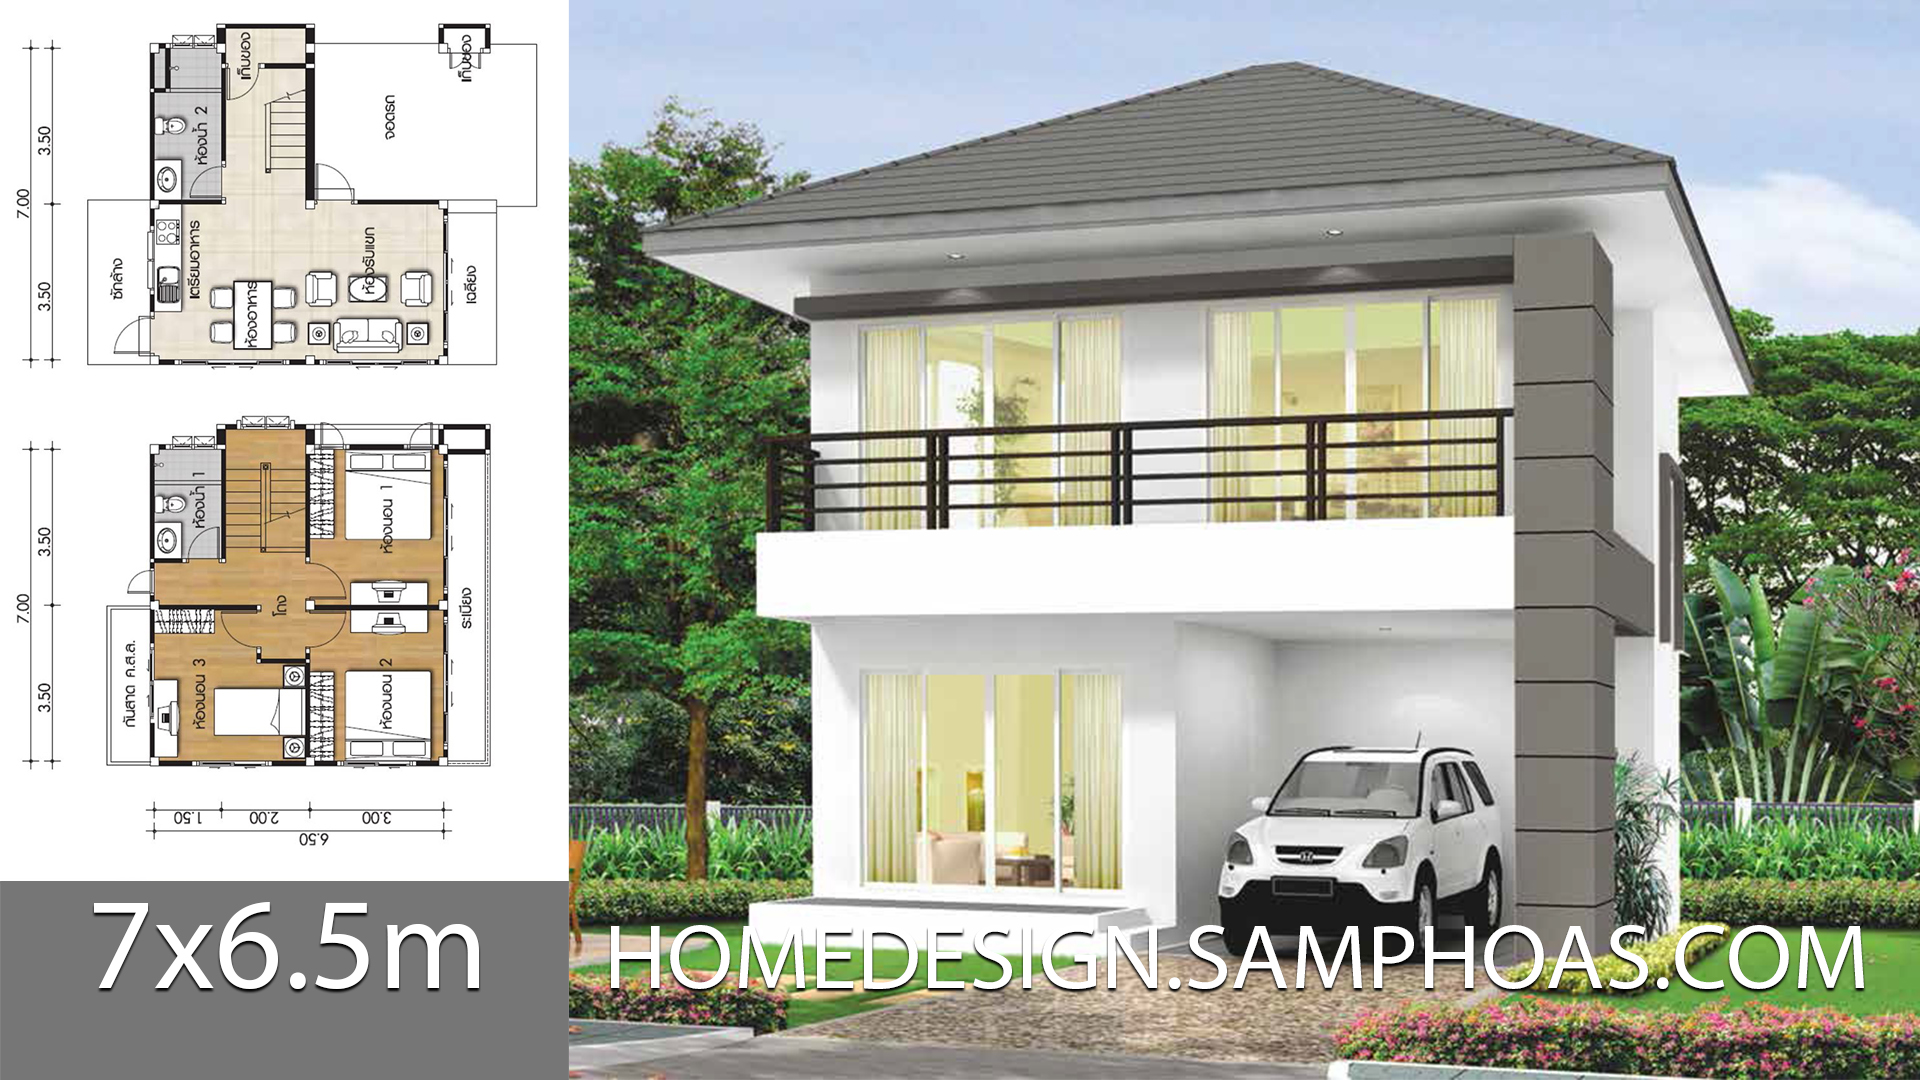 Small Home Plans 7x6 5m With 3 Bedrooms House Idea